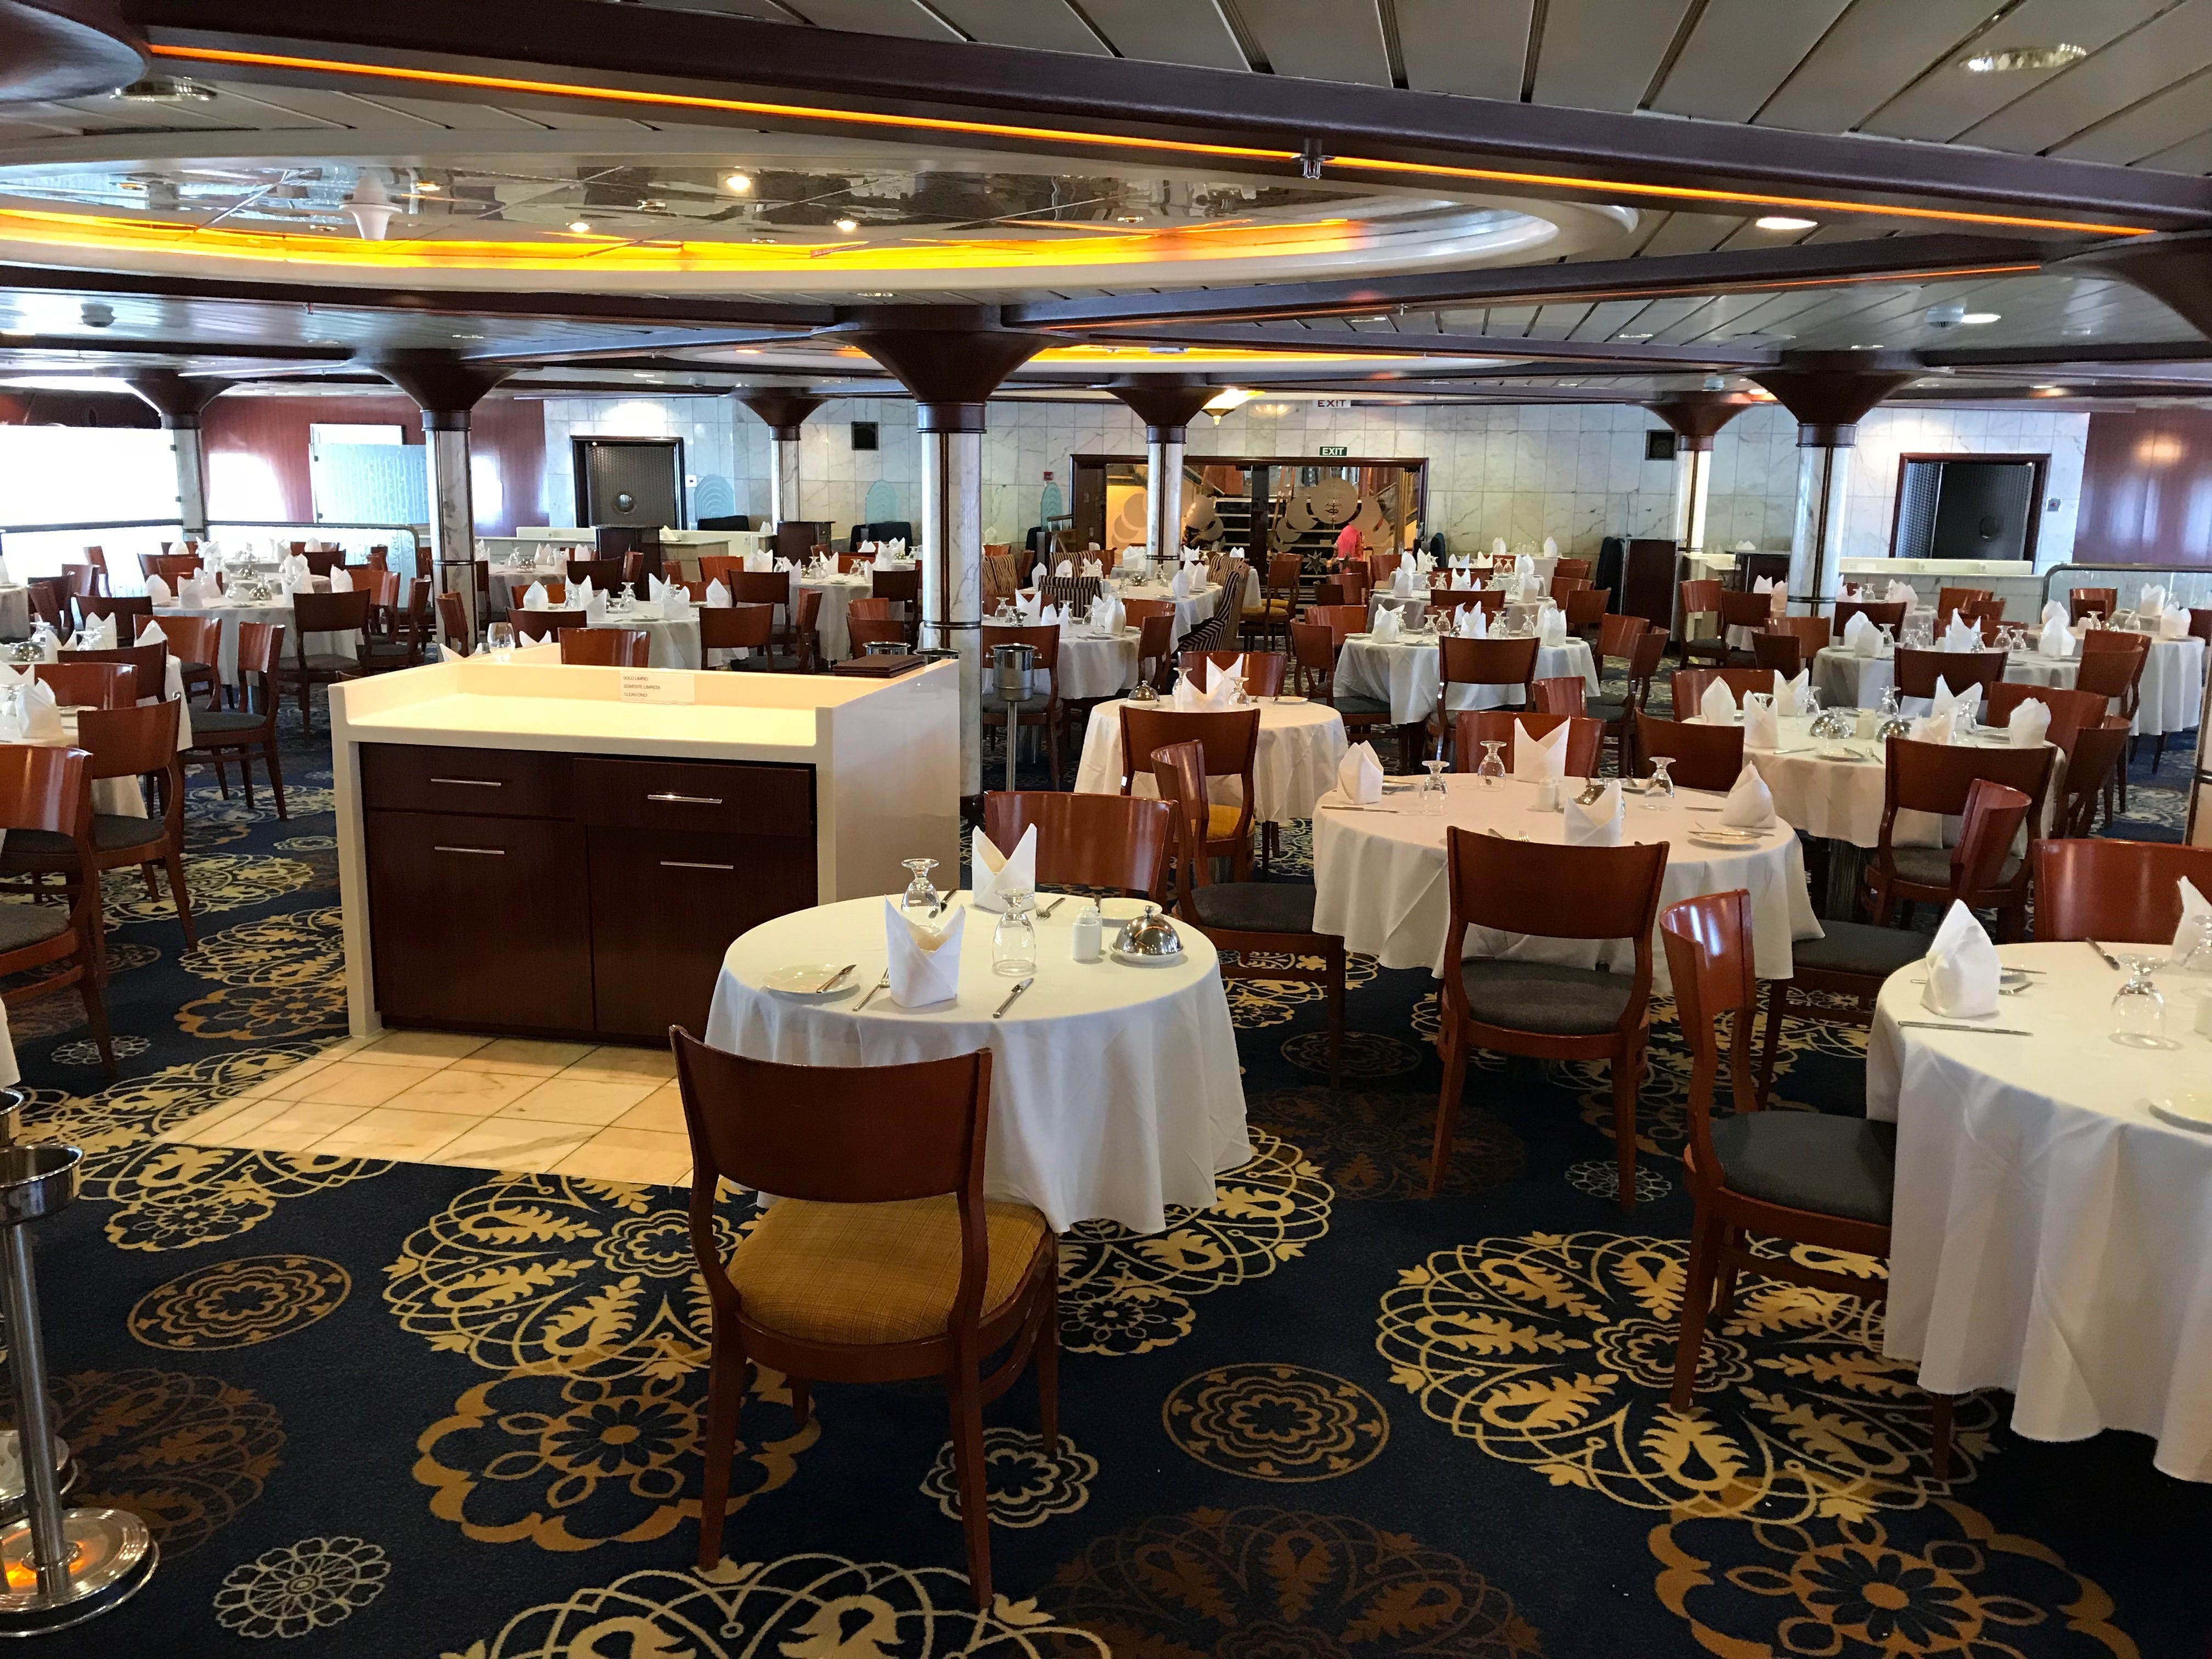 The Admiral's Steak and Seafood is an open-seating, extra-tariff ($30 cover) surf and turf restaurant on Aries Deck. This is the elevated mid-section of the room.